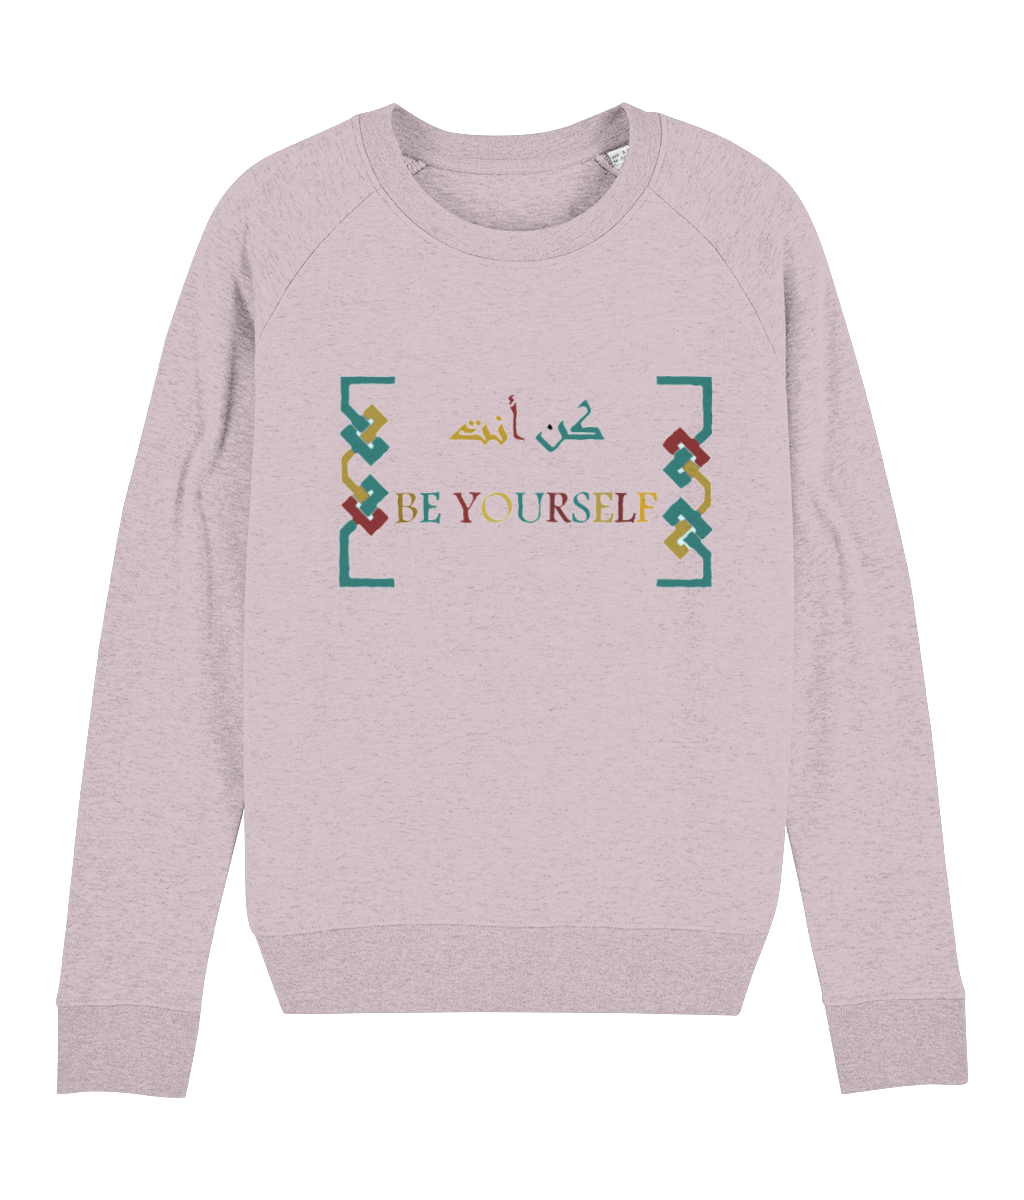 Designer T-shirt CREW NECK SWEATSHIRT- Arabic Calligraphy - BE YOURSELF - كن أنت